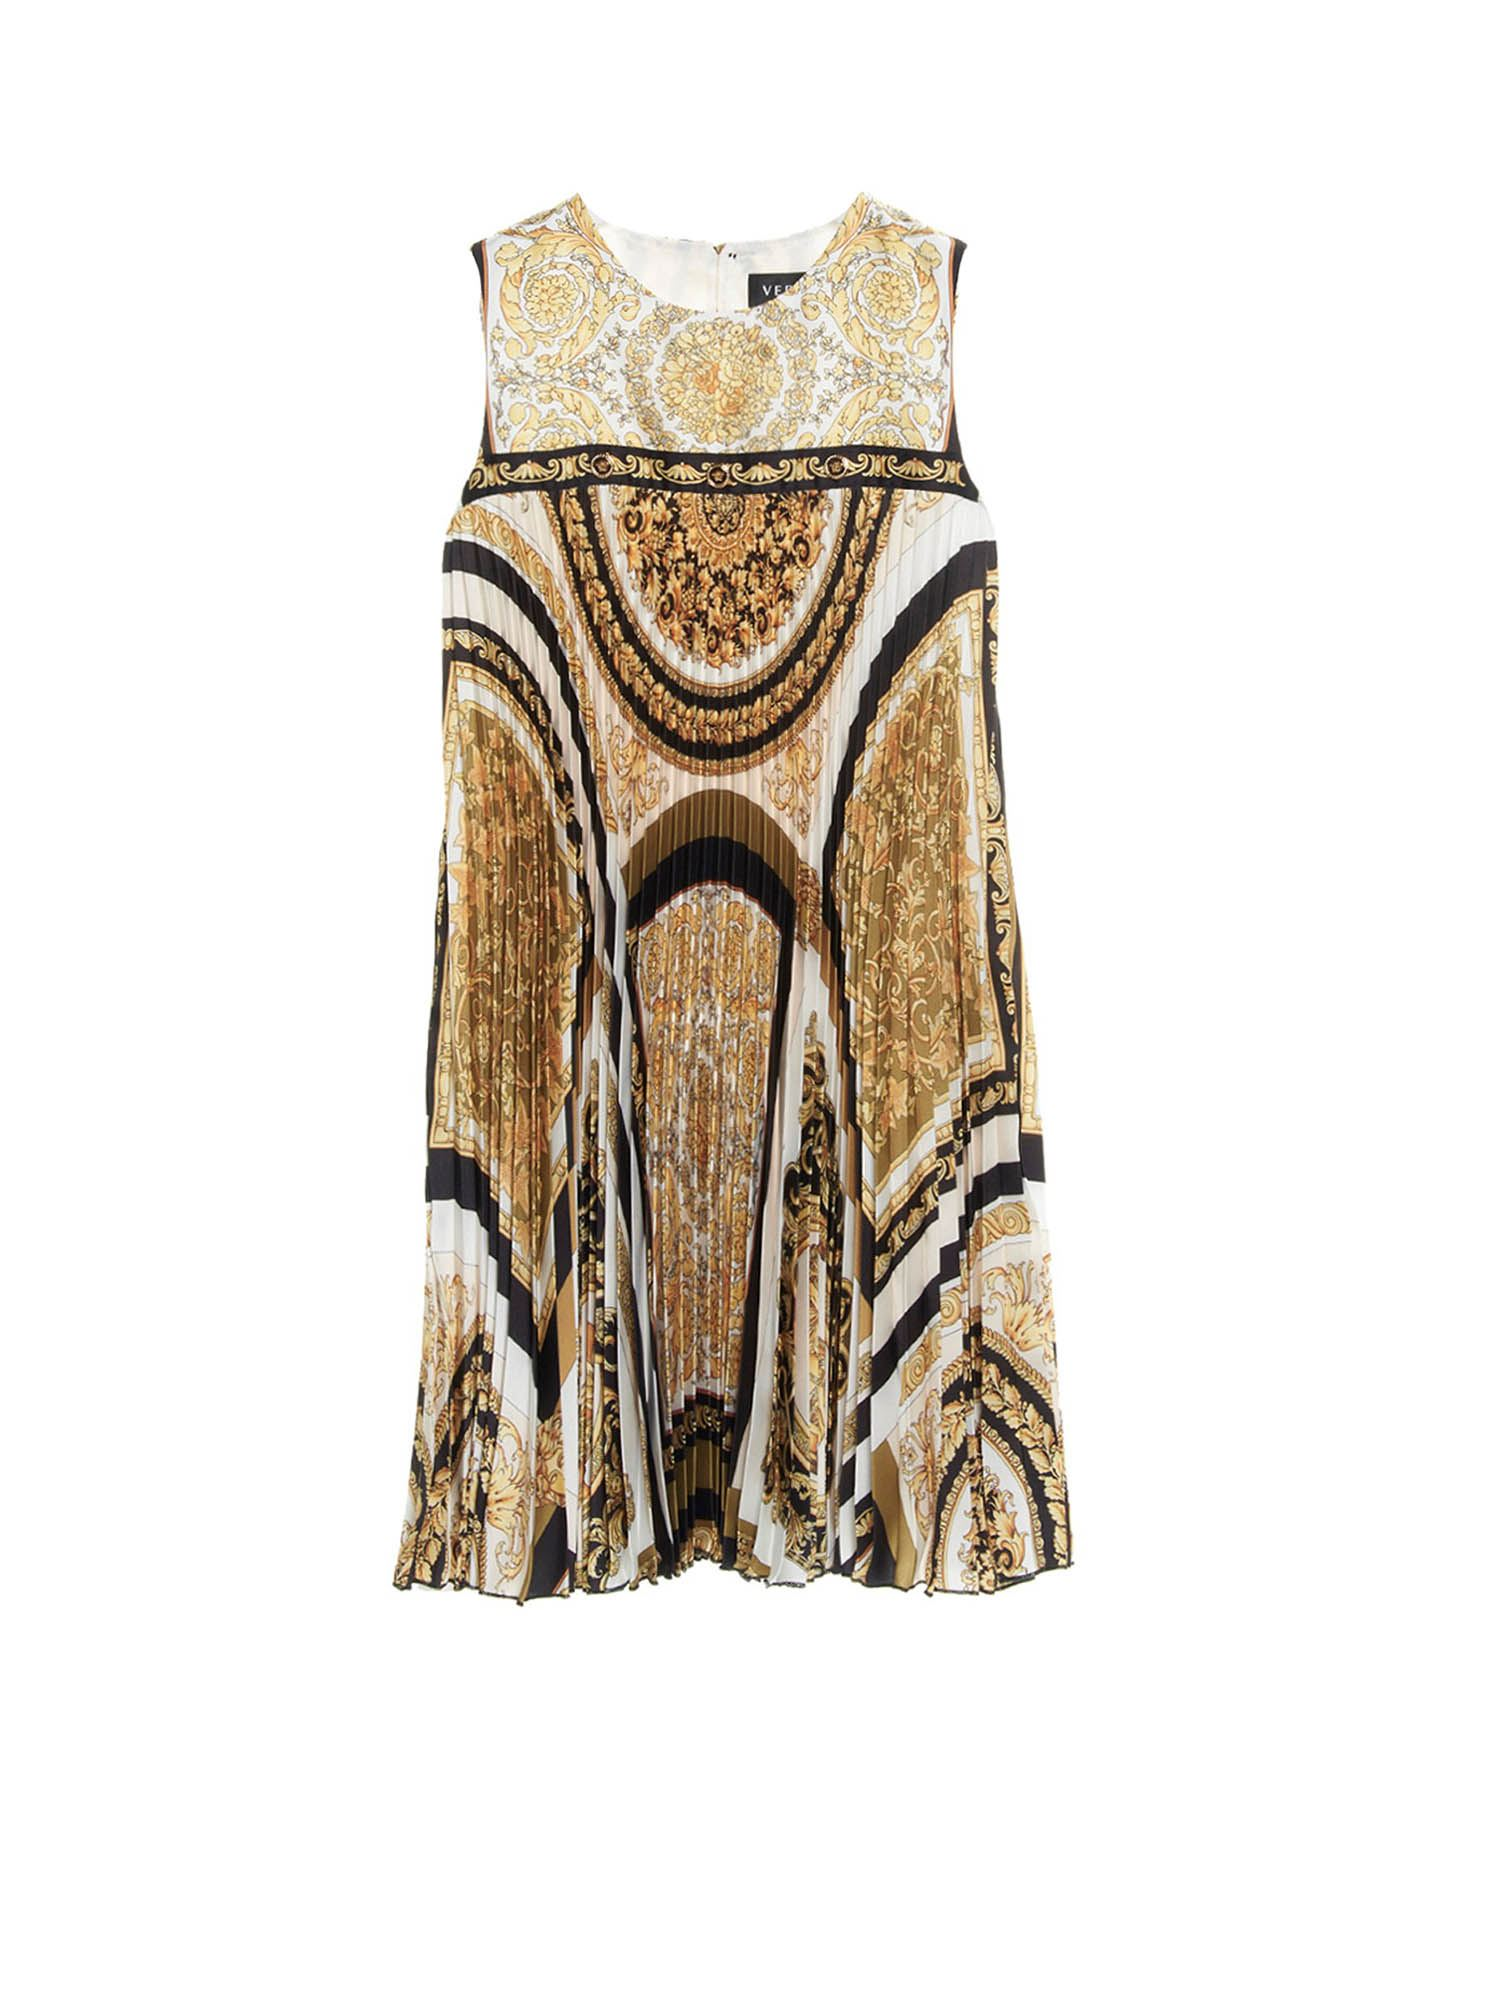 Versace Young Kids' Barocco Dress In White, Black And Gold Color